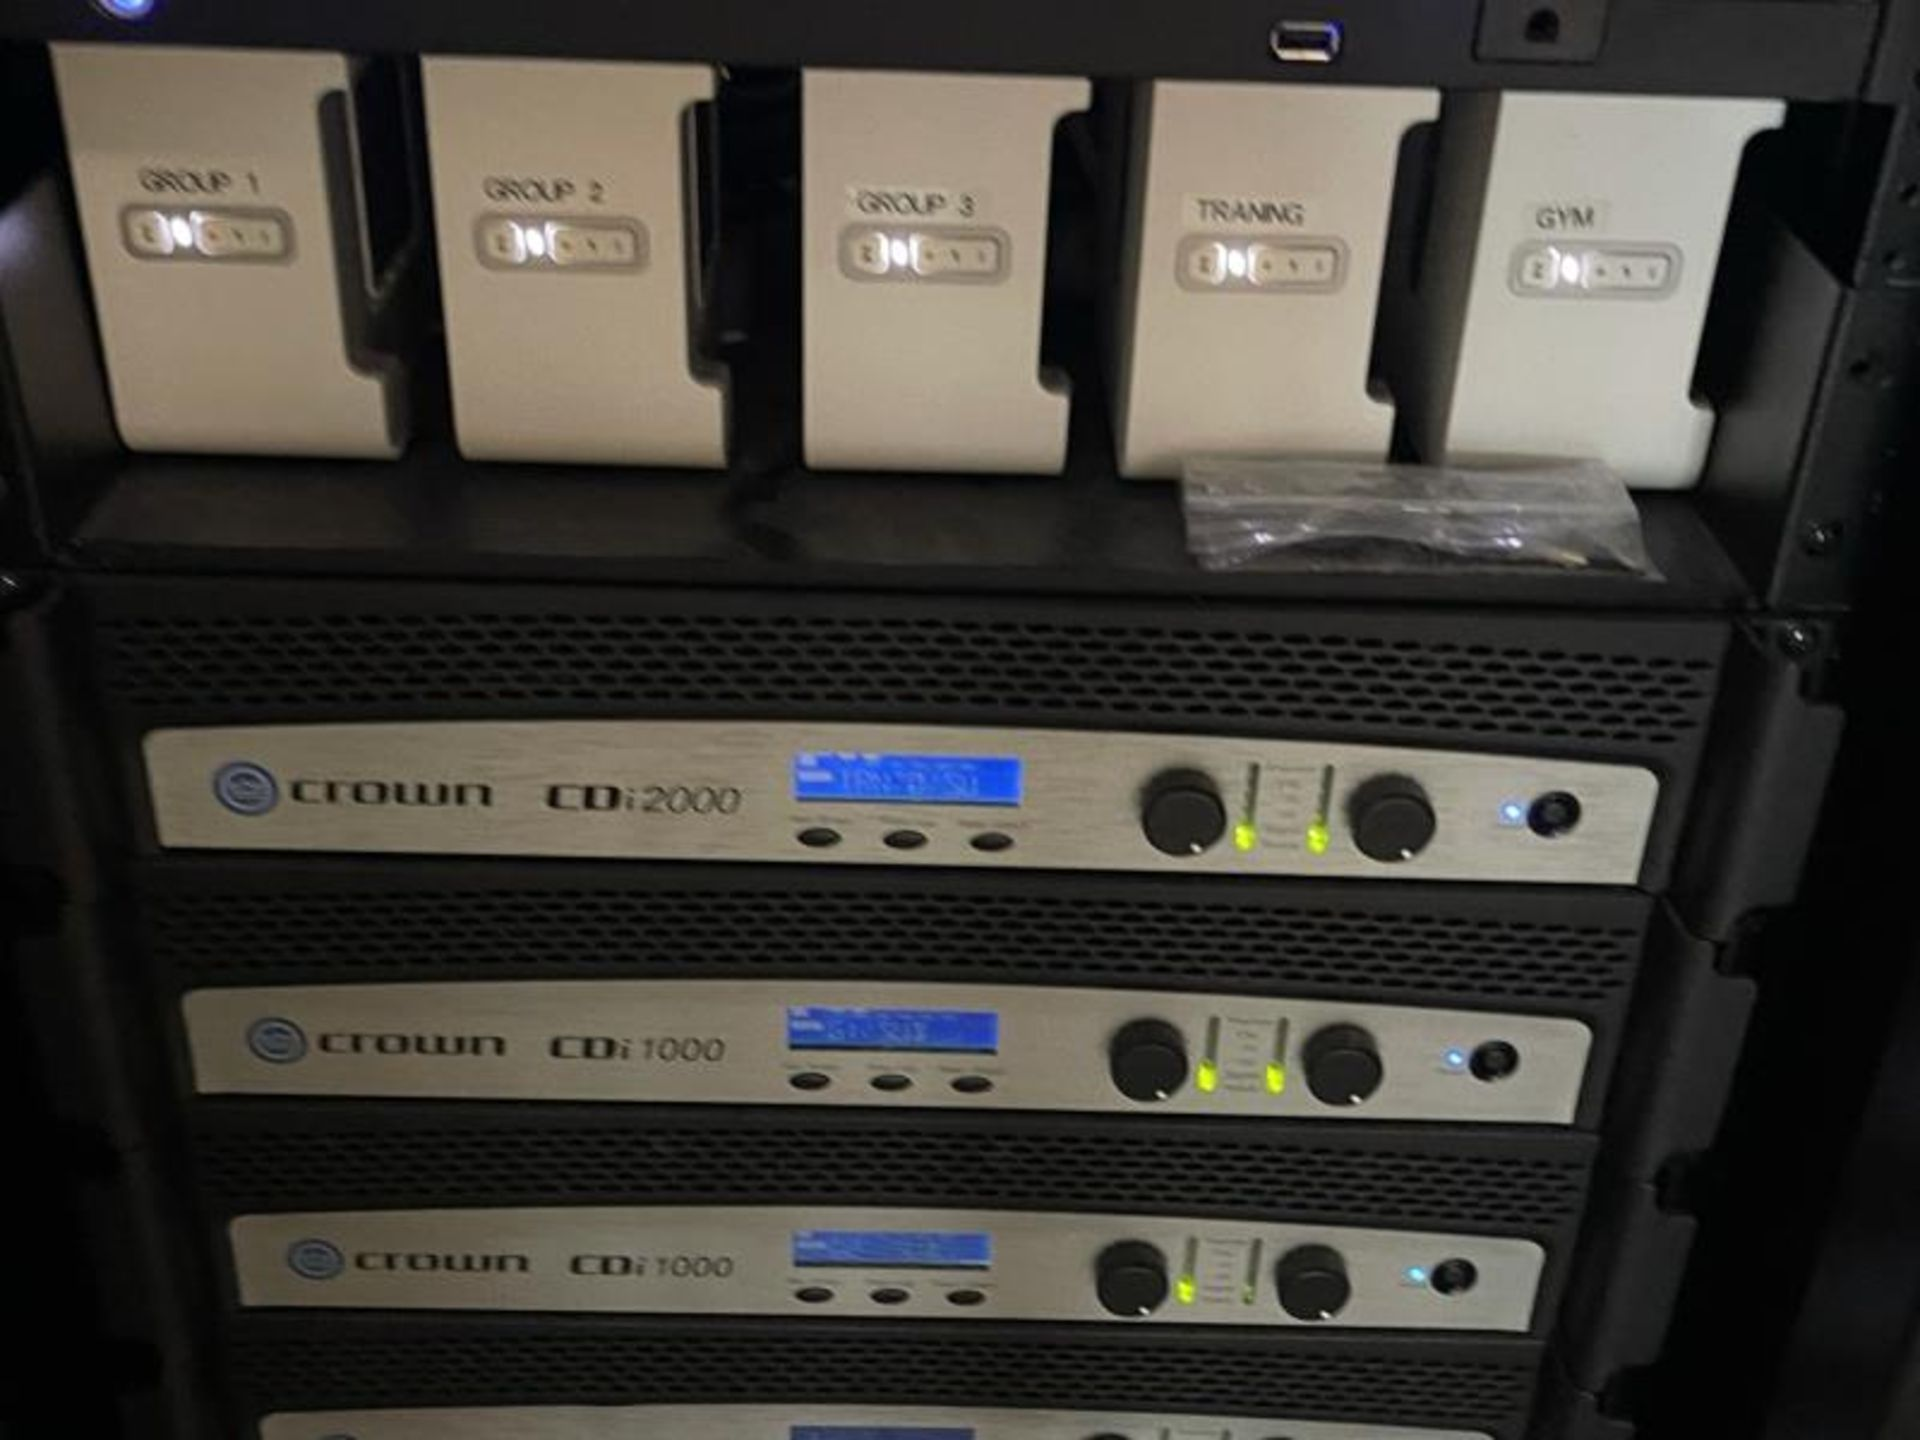 Electornics Cabinet by Strong , Made 2018 w/ Luma Network Box, OVRC Enabled LUM-500-DVR-16CH, (2) Wa - Image 16 of 18